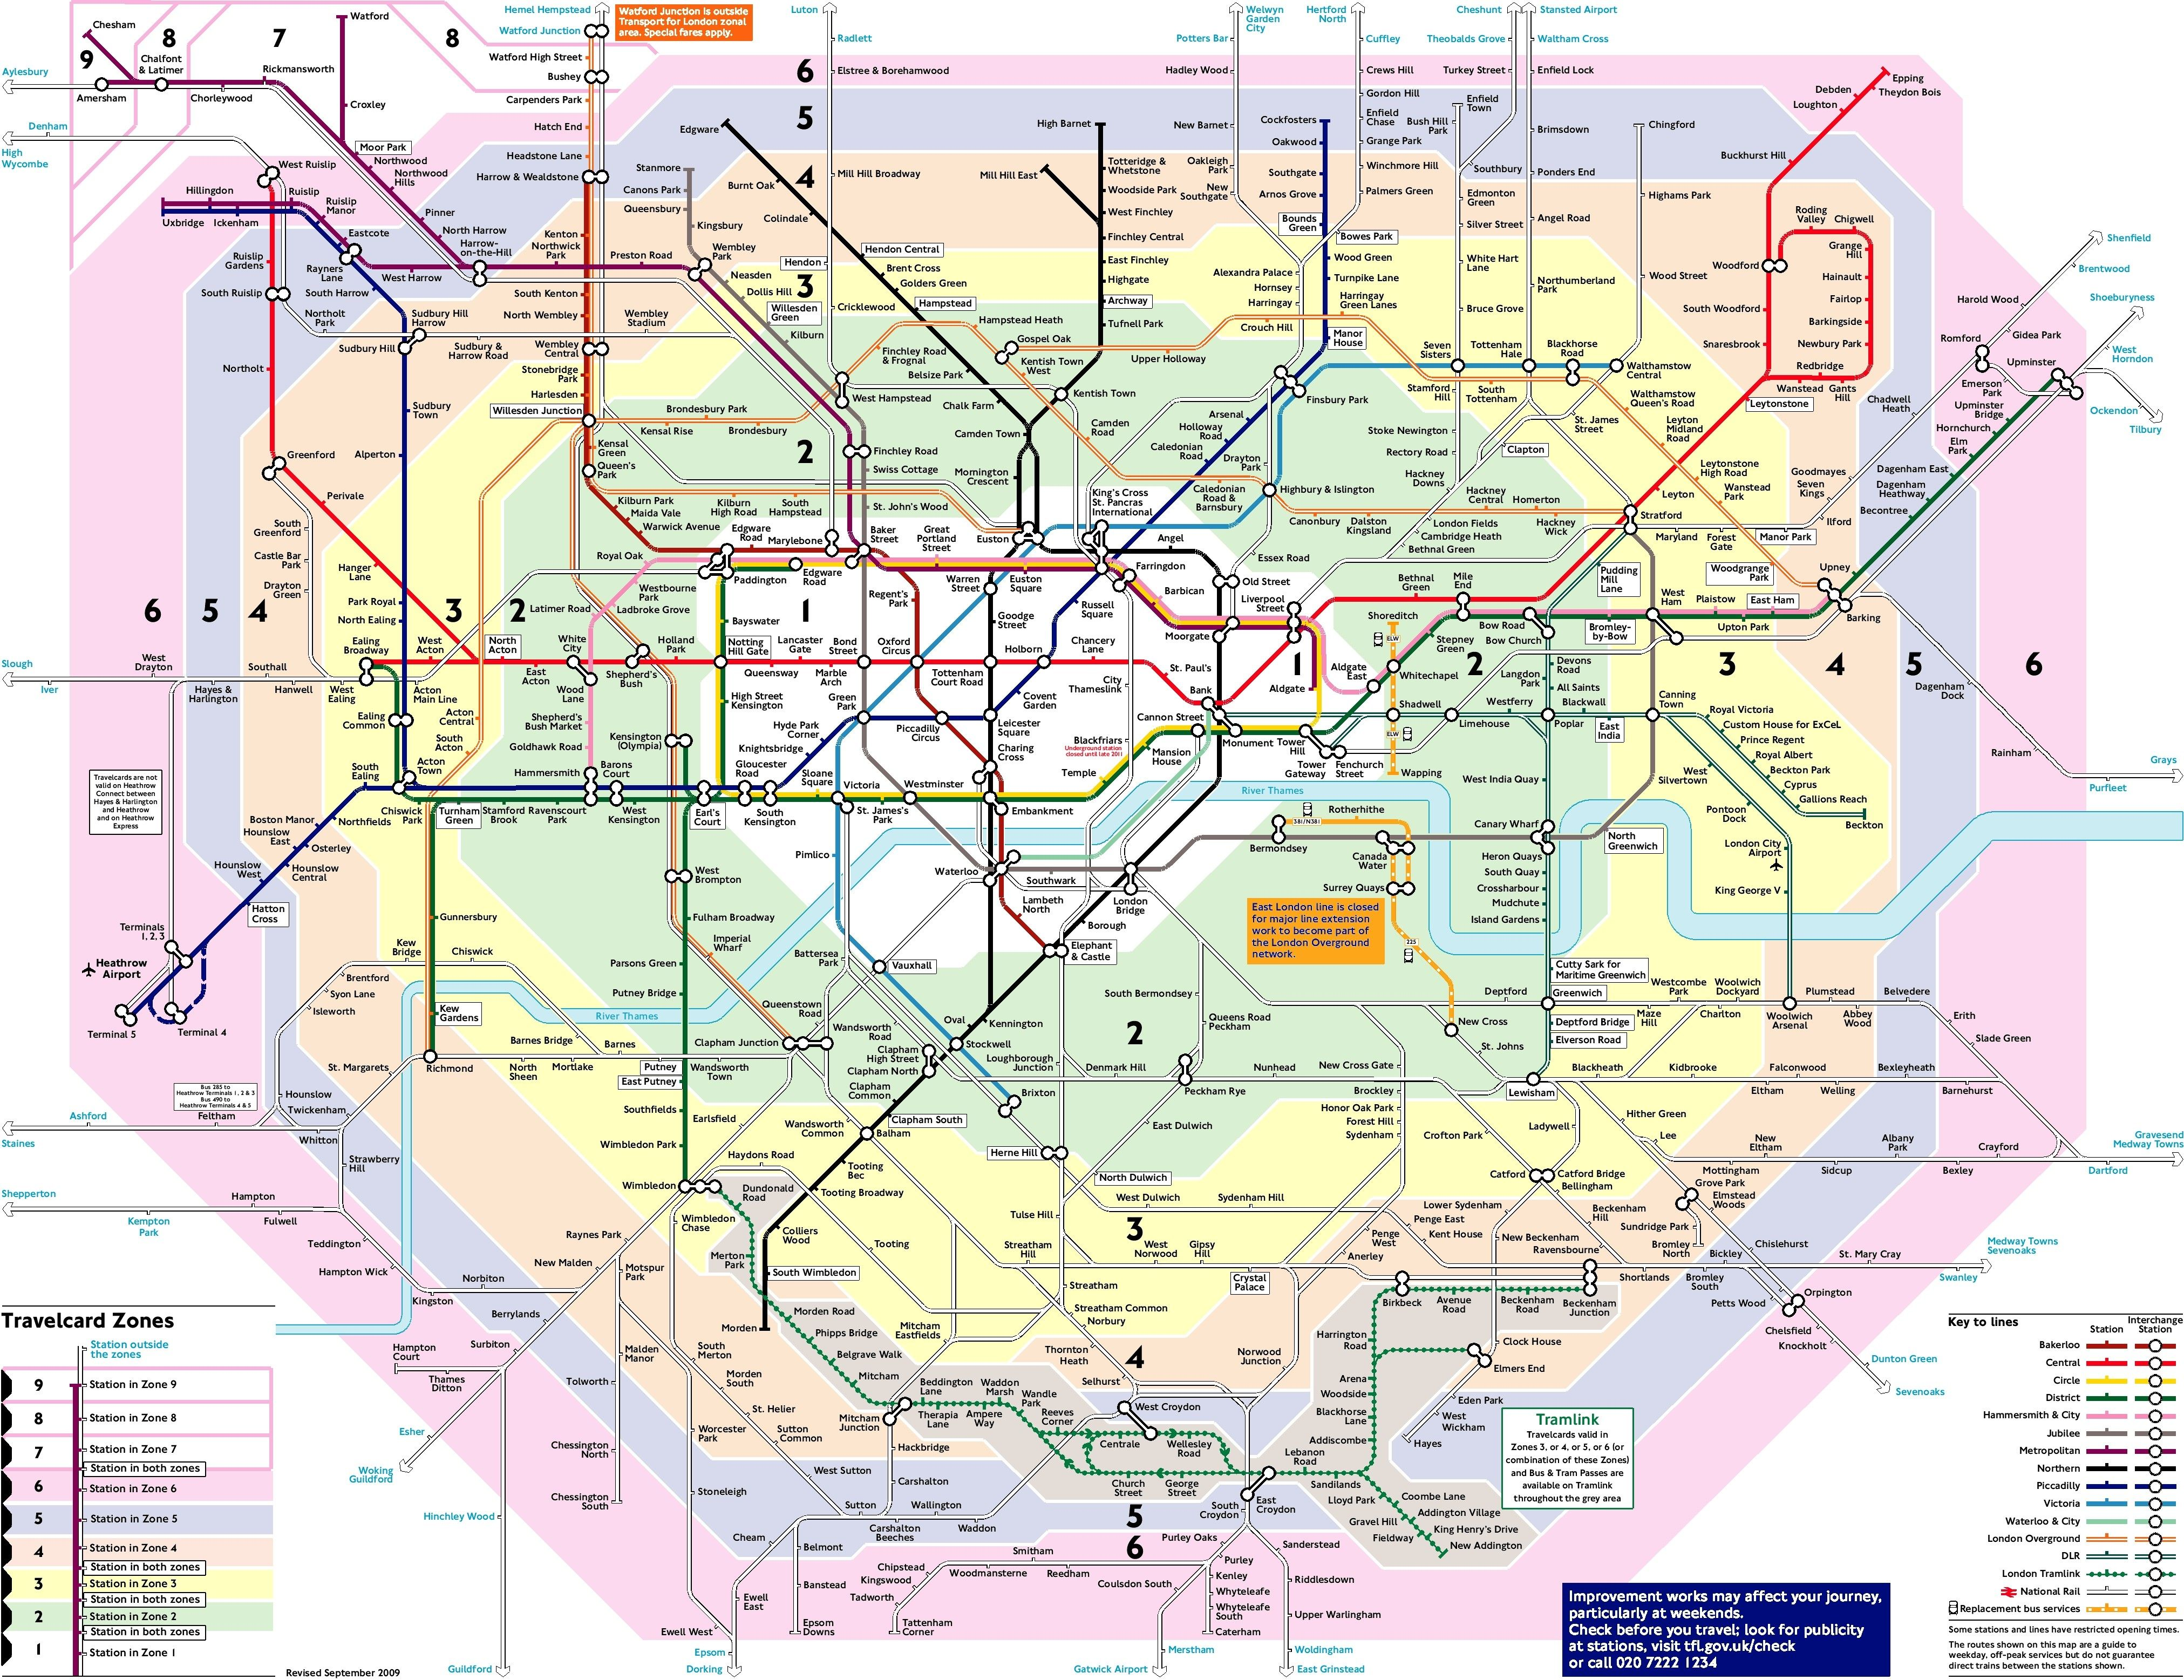 Zone Map Of London on map of london zoning, tube zones, london travel zones, map of london clubs, london transport zones, london travelcard zones, london subway zones, map of london wards, underground map with zones, map of london areas, map of london color, map of london districts, paris travel zones, map of london rail stations,